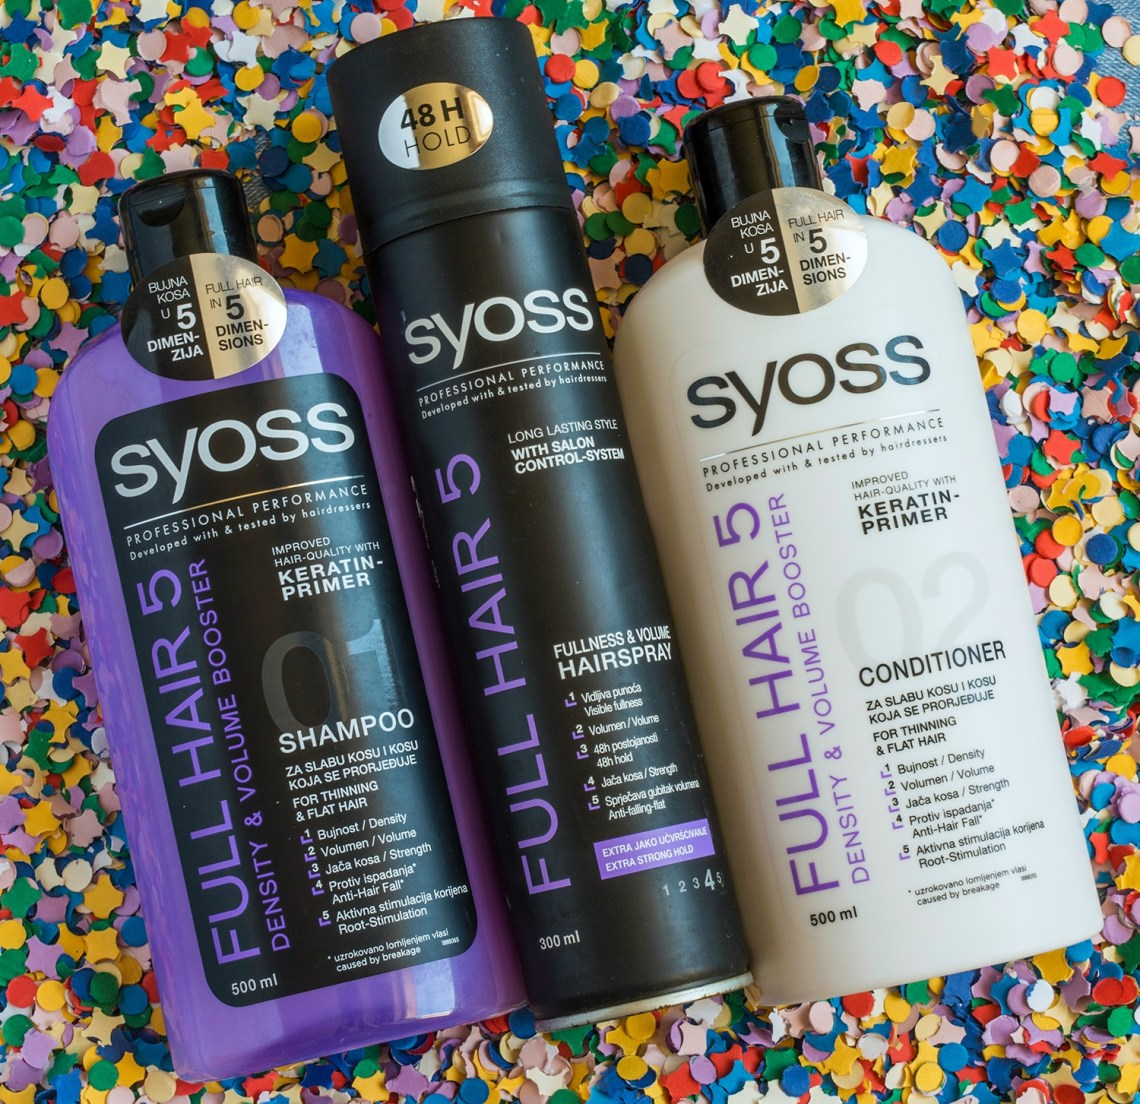 syoss full hair 5 - my hair care routine (2)